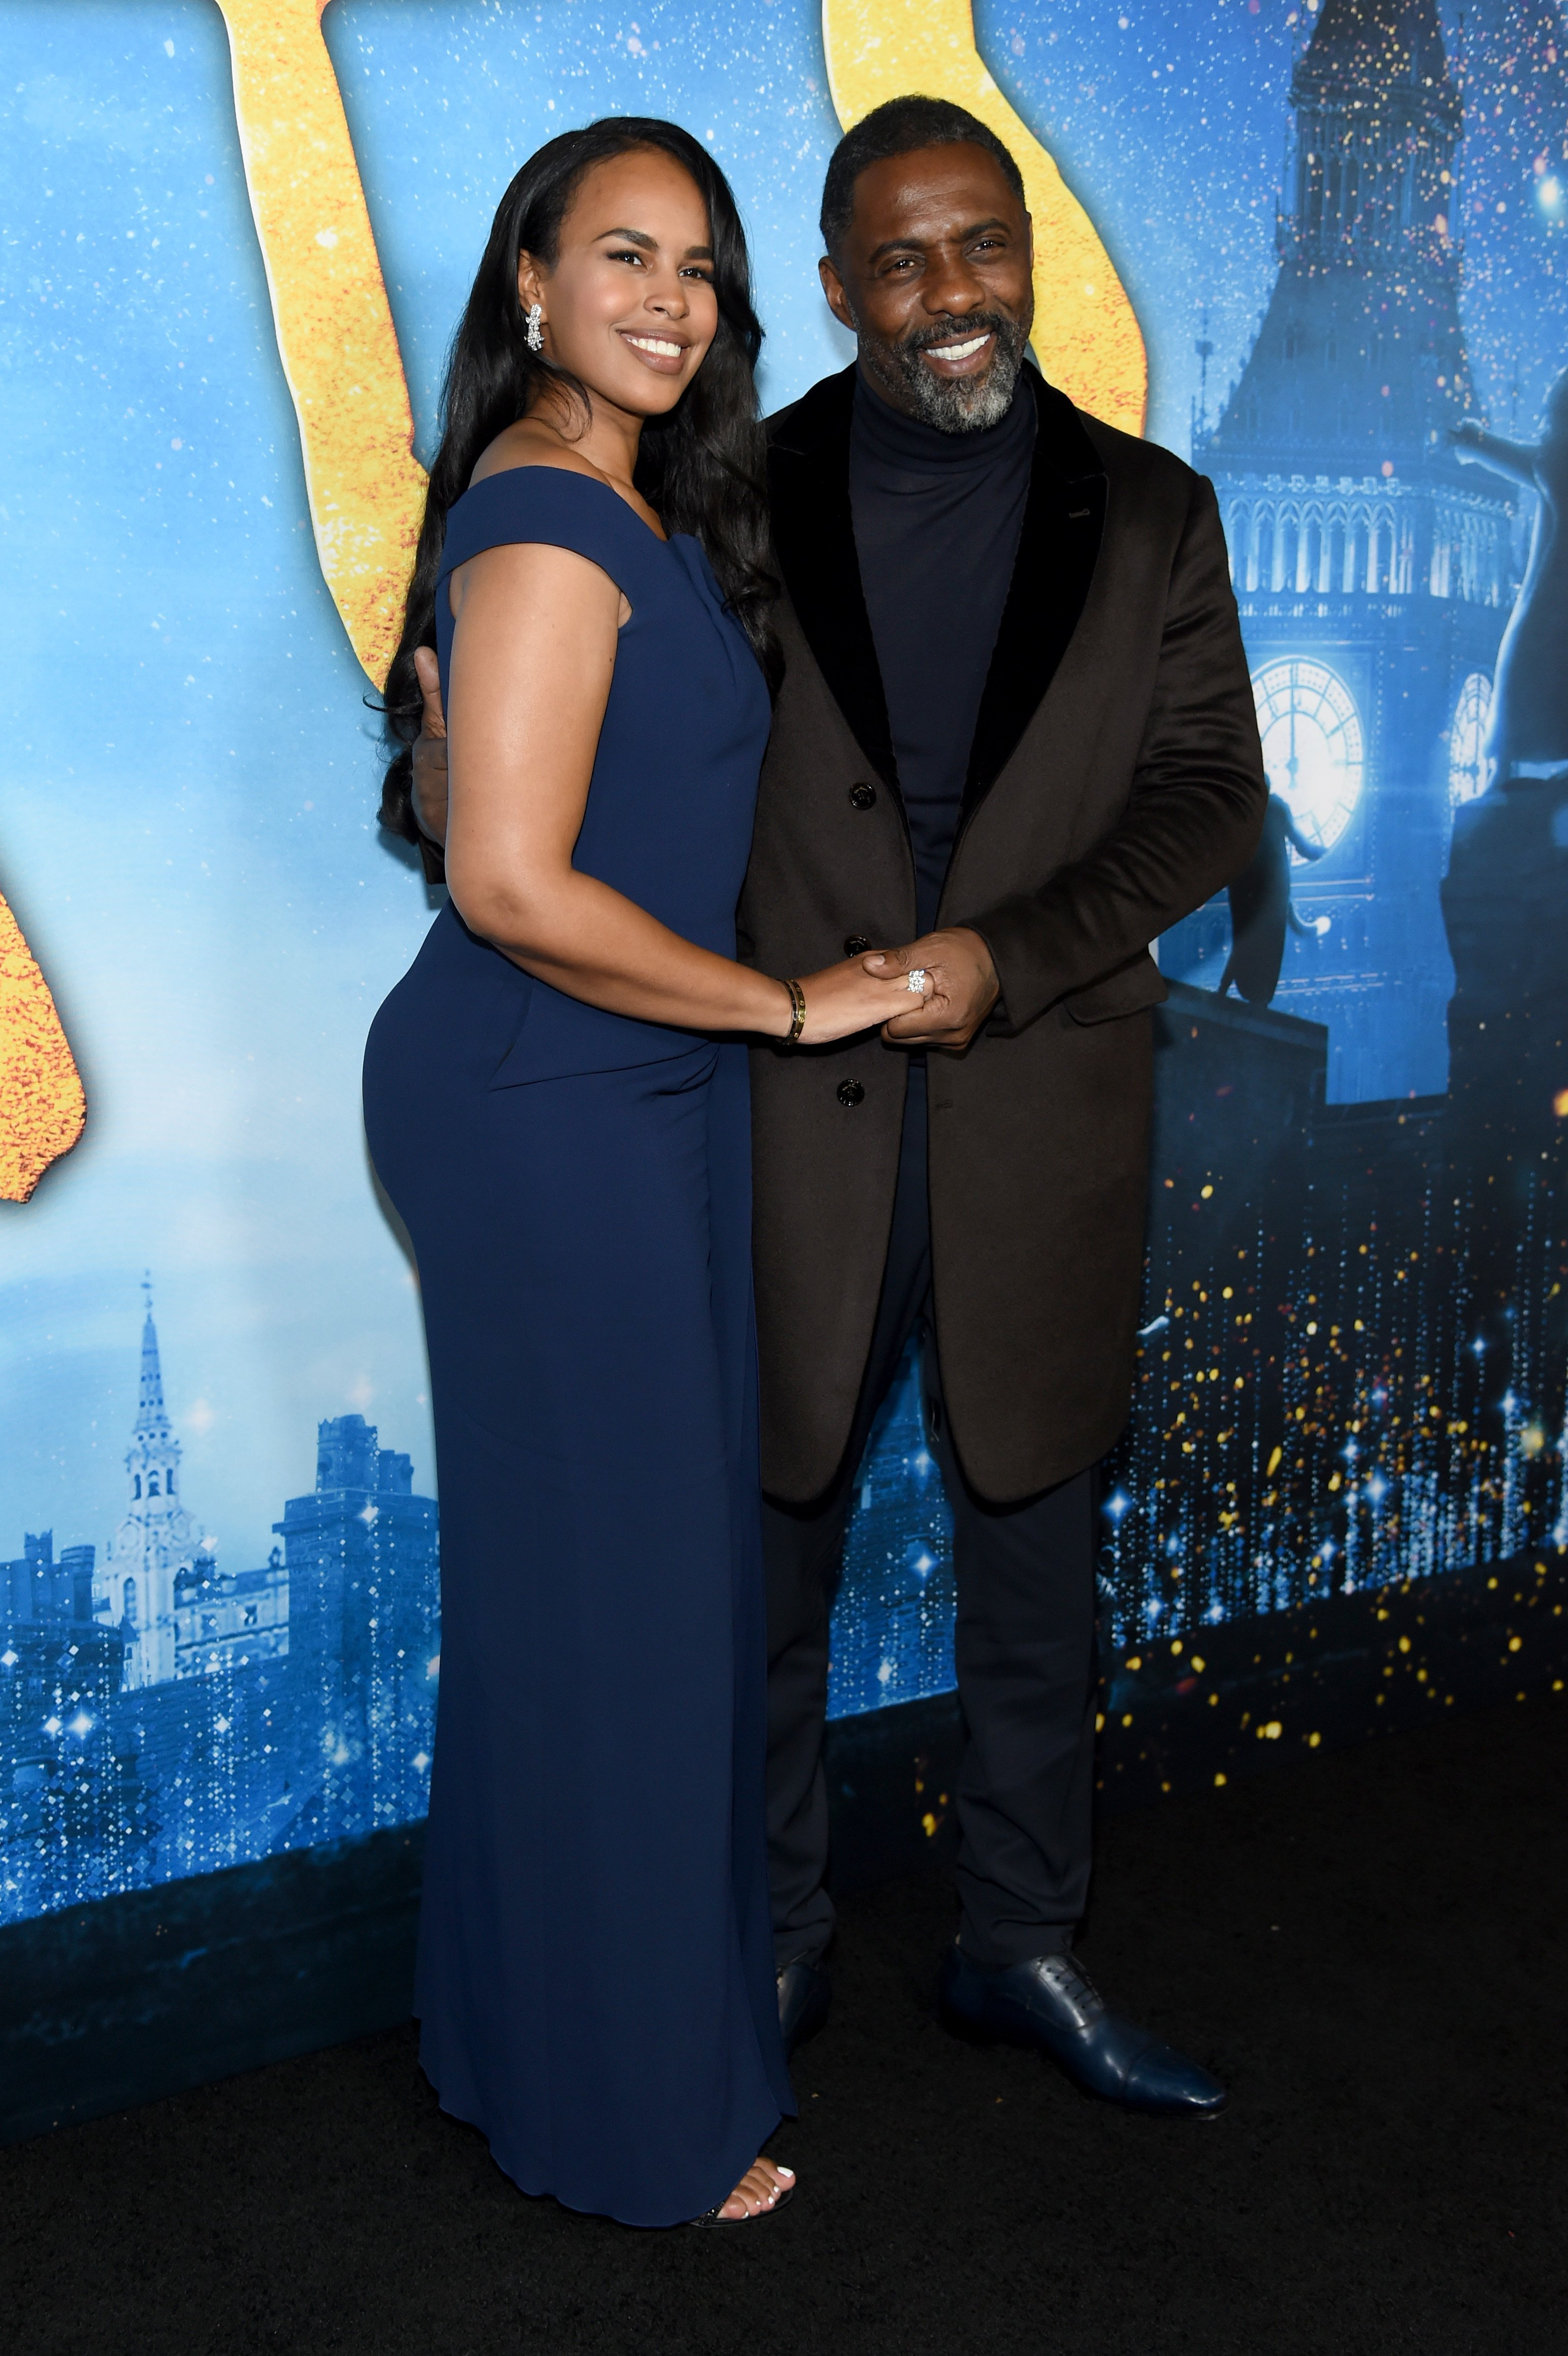 """Sabrina Elba and Idris Elba at the world premiere of """"Cats"""" on December 16, 2019 in New York City. 